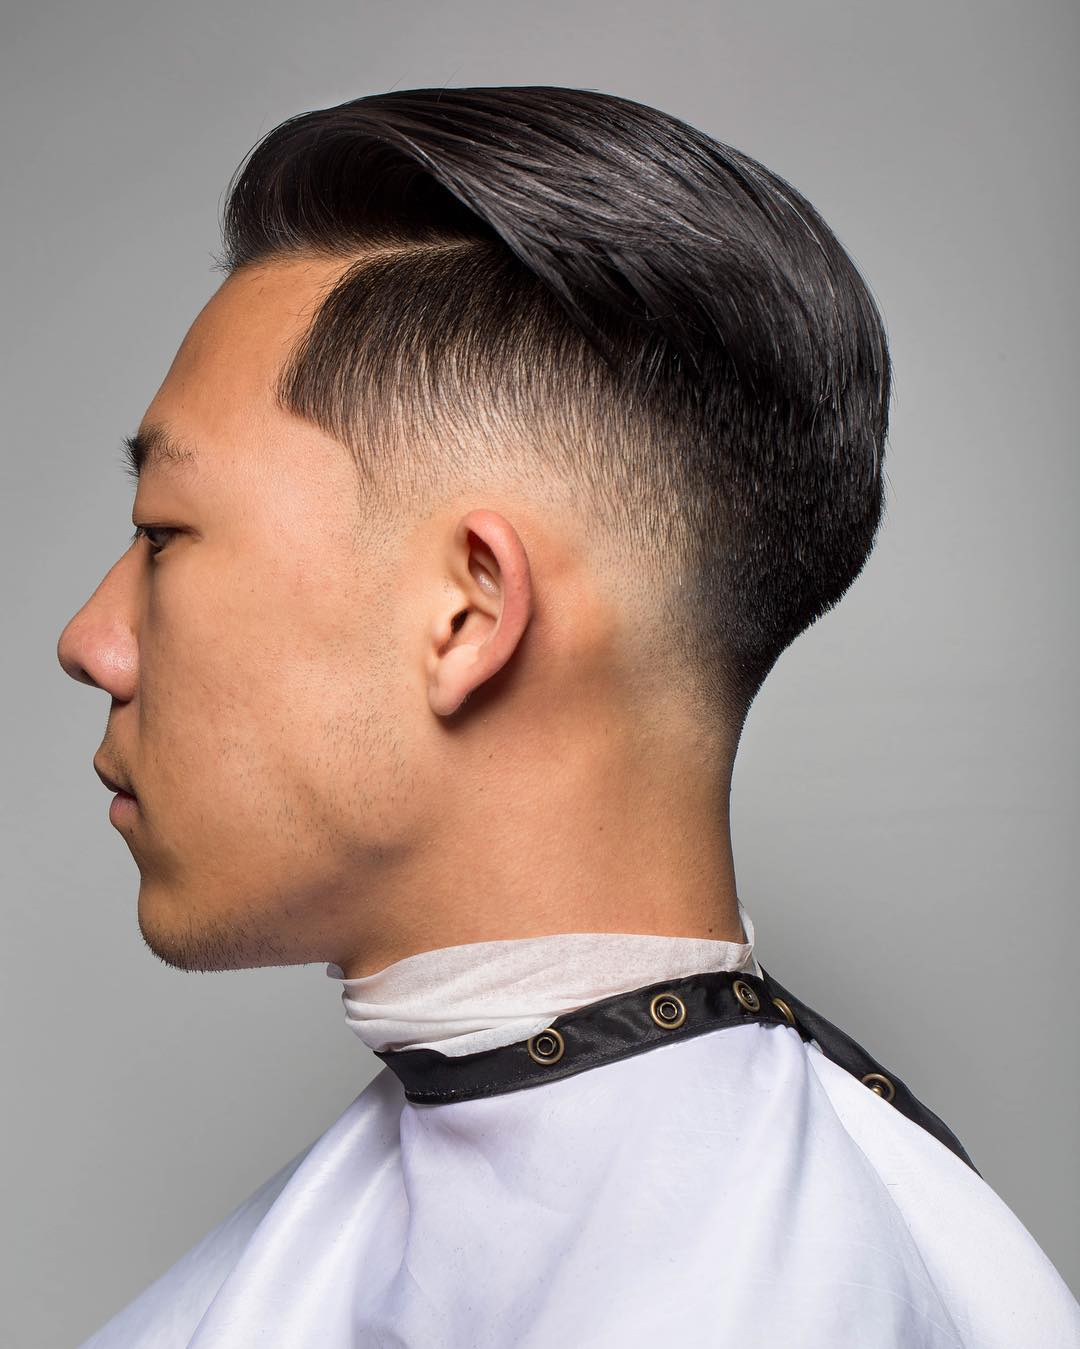 Undercut with a Neat Combover